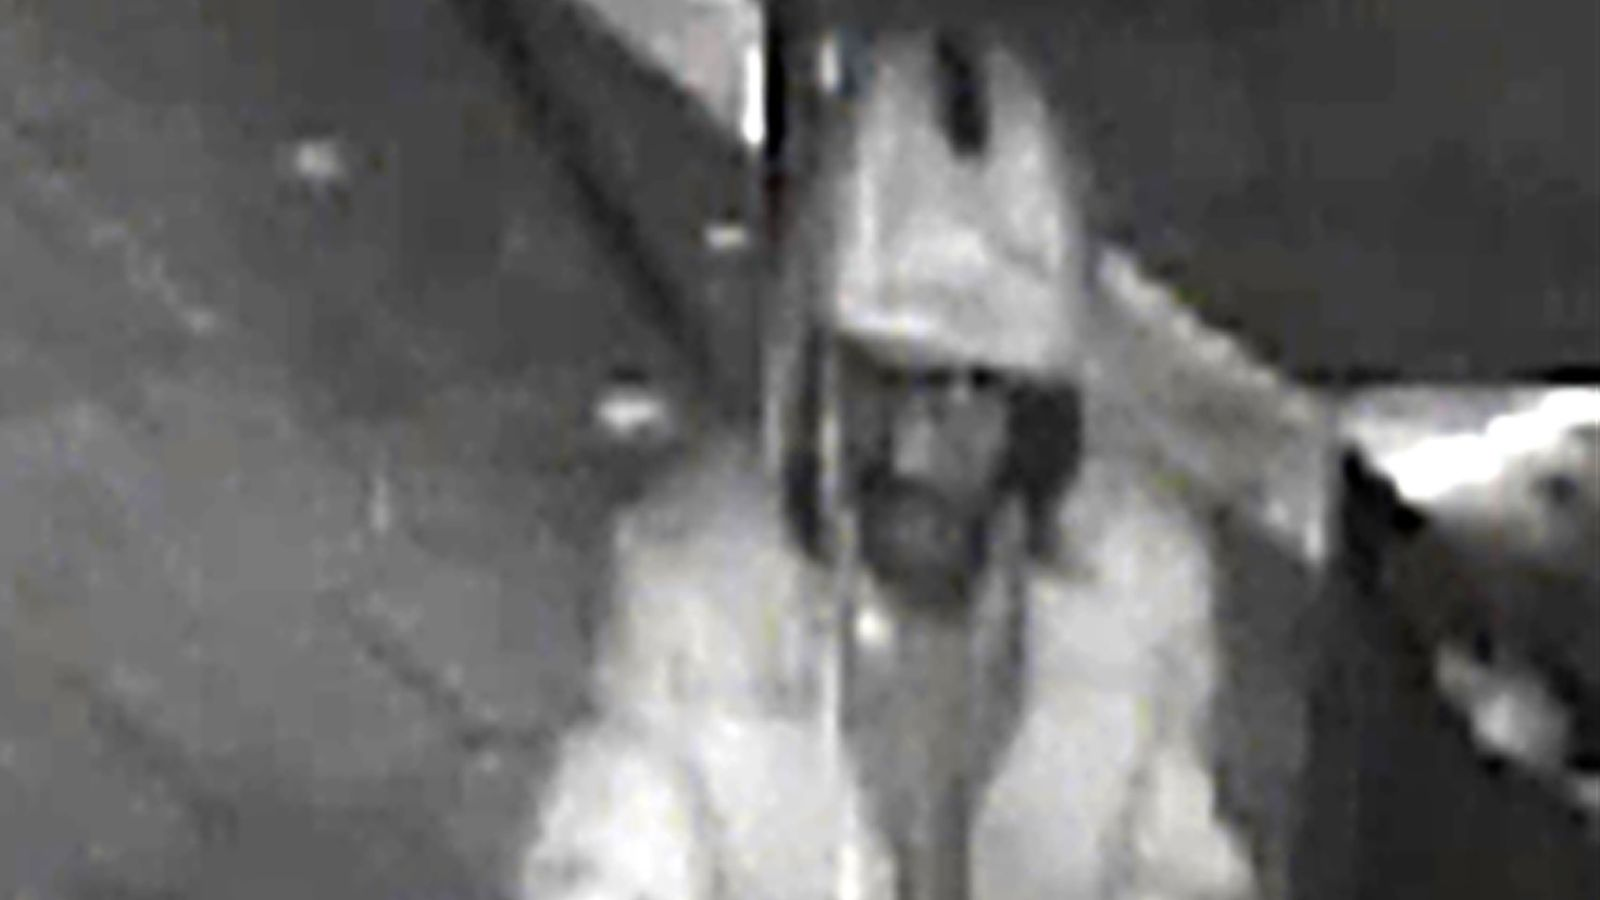 Police release image of suspect following rape of man in Bristol park